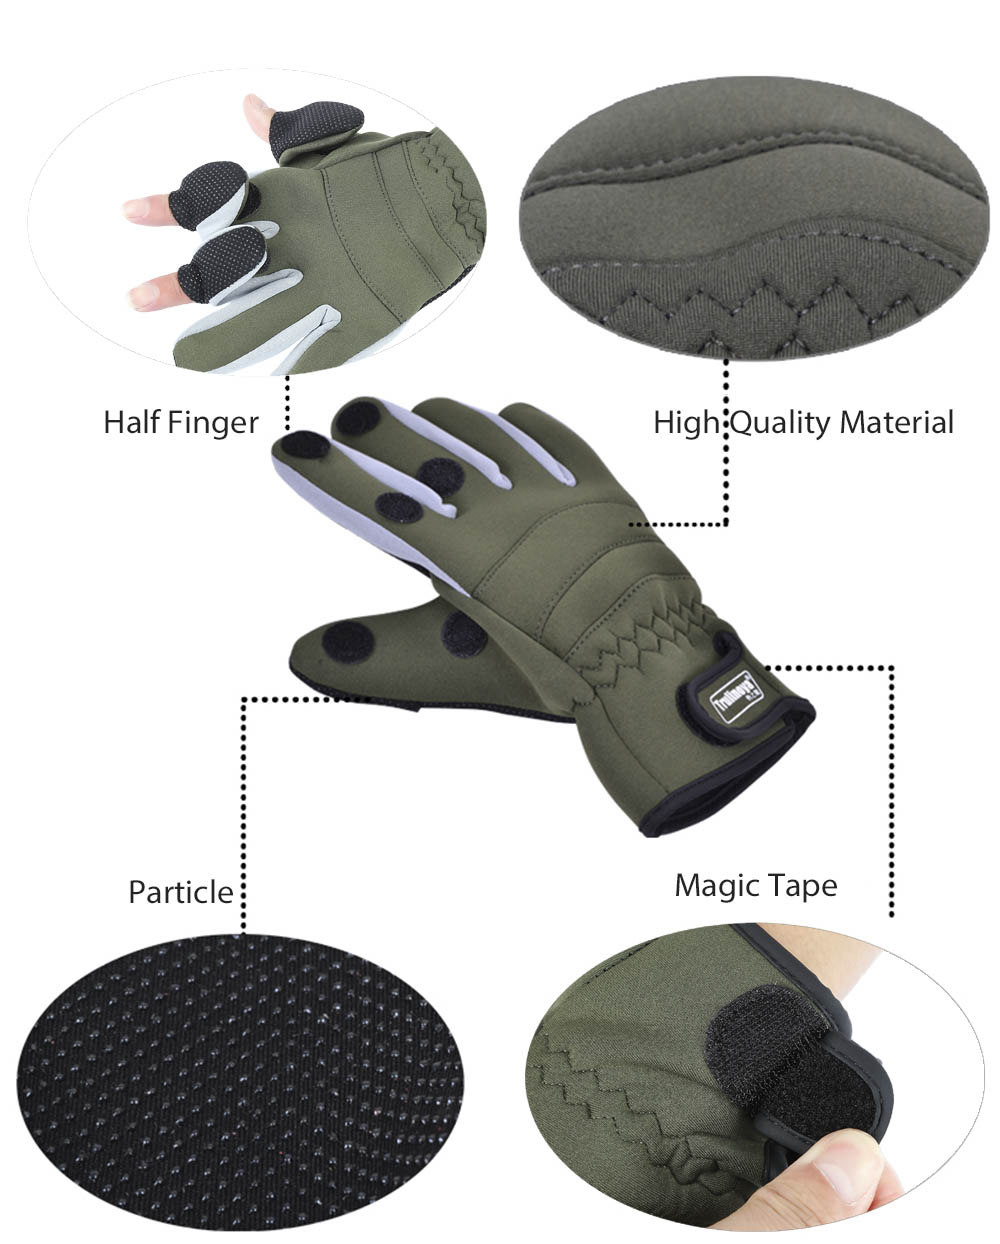 TSURINOYA Paired Outdoor Warm Protection Windproof Water Resistant Fishing Full Finger Glove